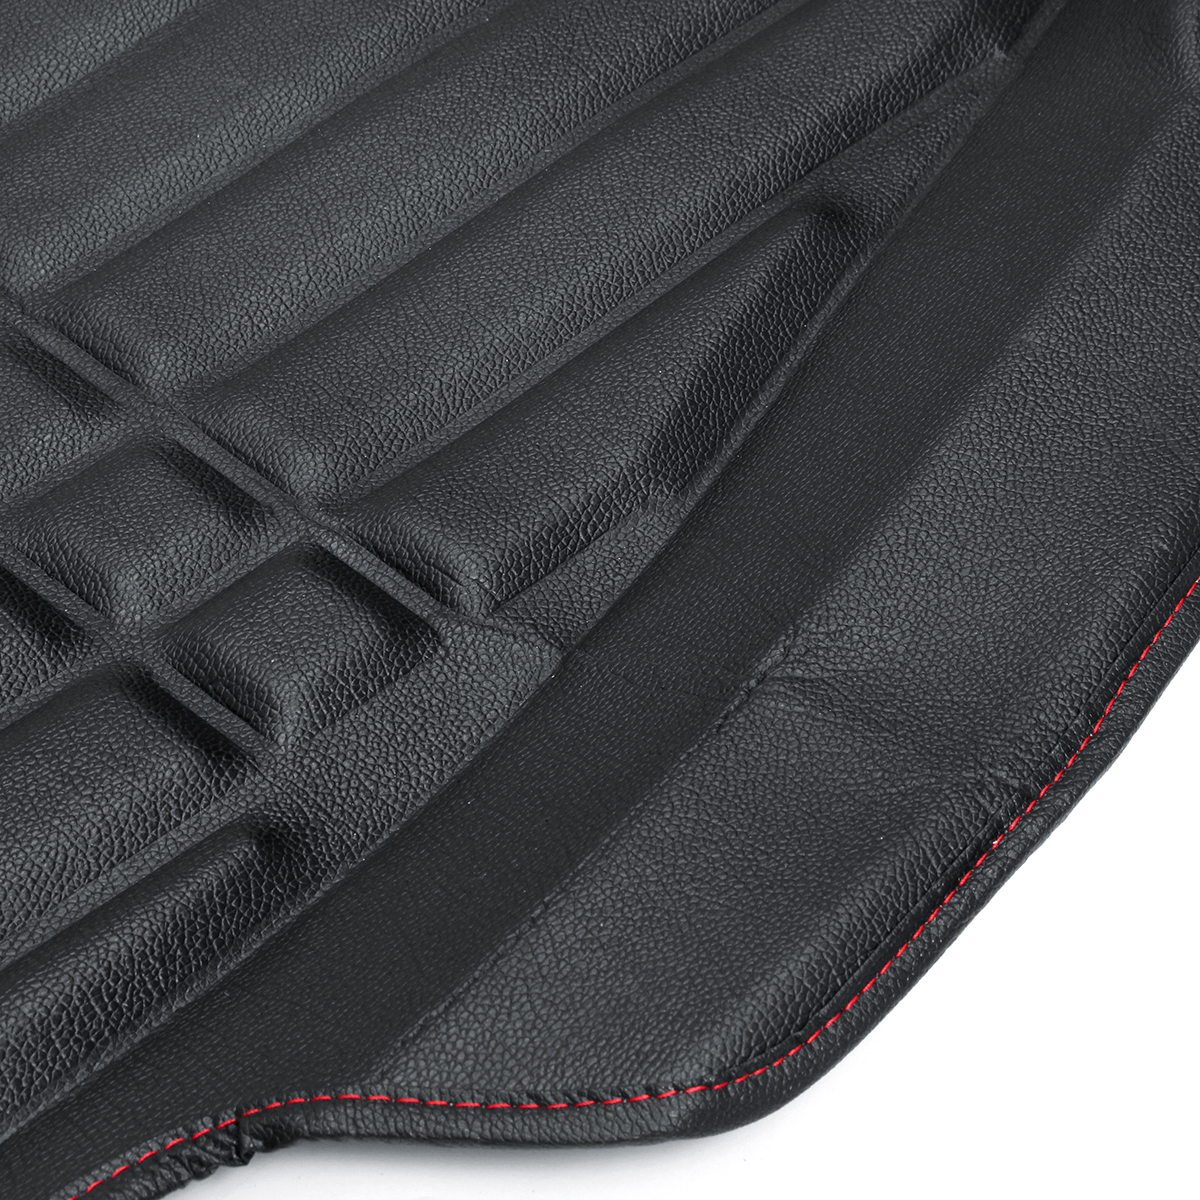 Polyethylene Car Rear Boot Trunk Cargo Dent Floor Protector Mat Tray for Mazda CX-5 2017-2018